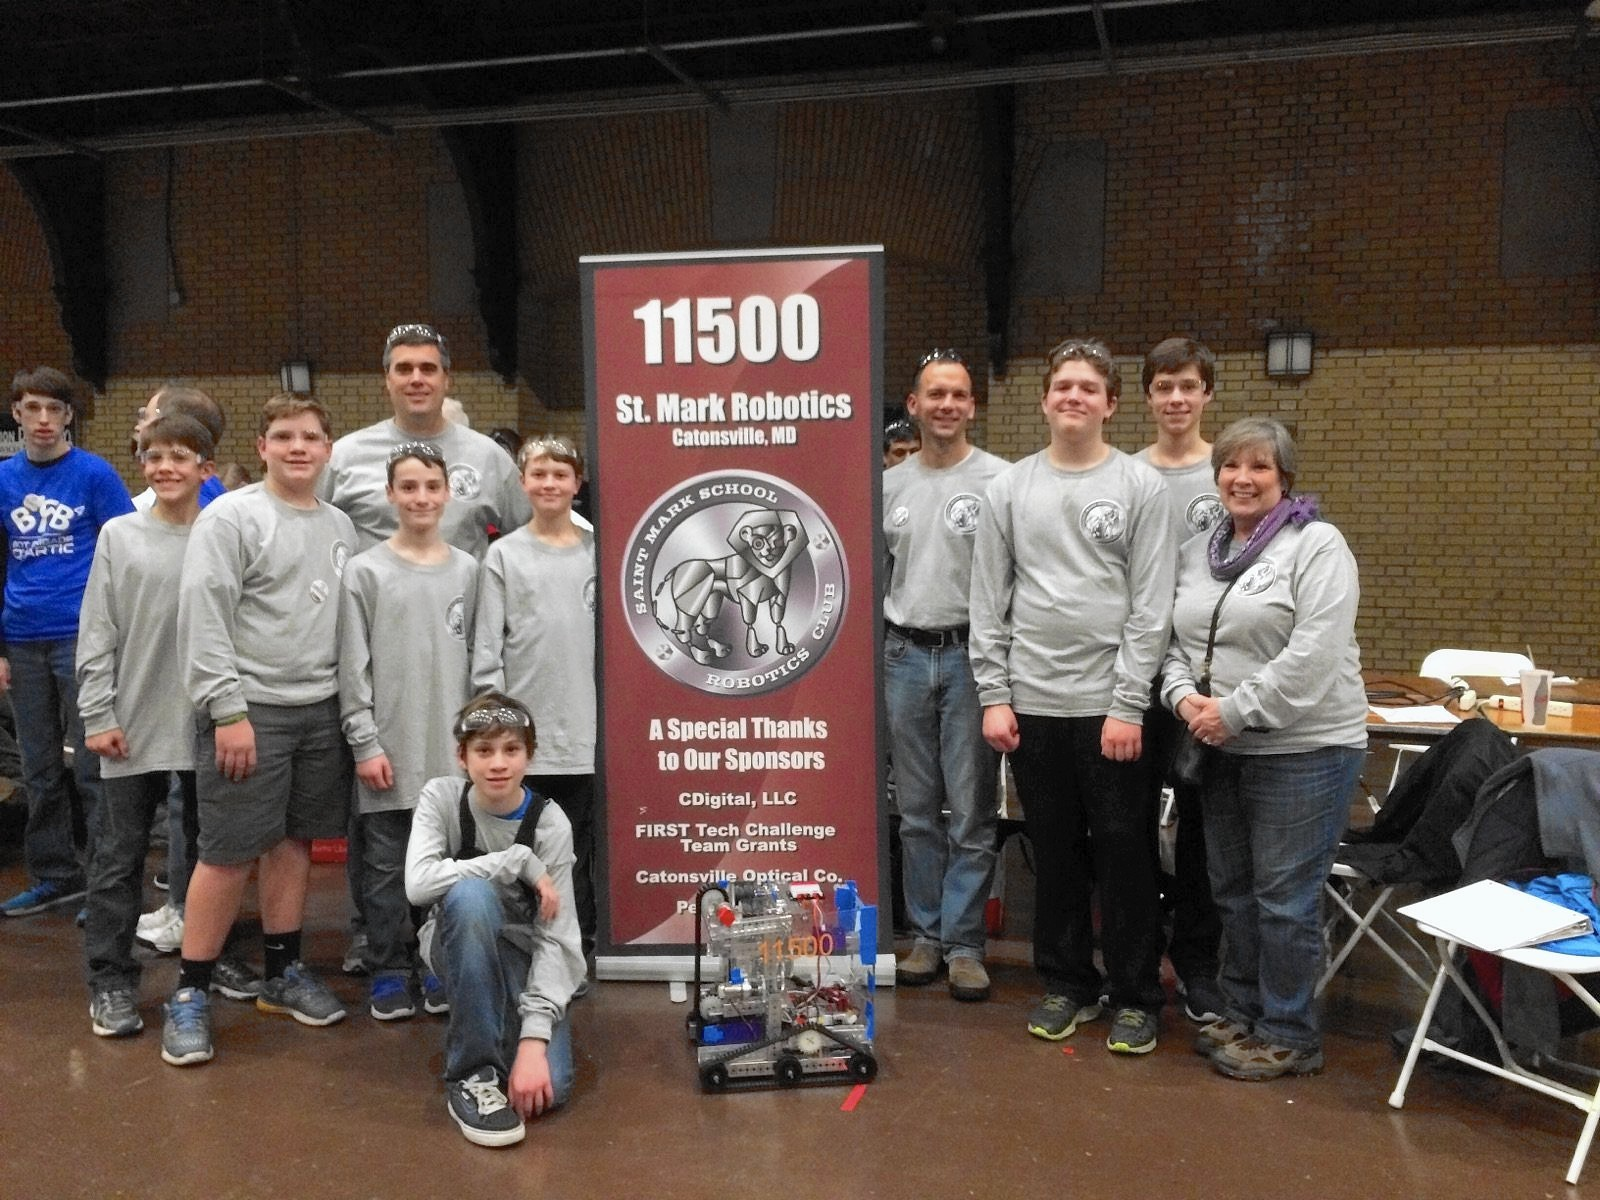 Rookie Team From Catonsville Finishes In Top 10 At Robotics